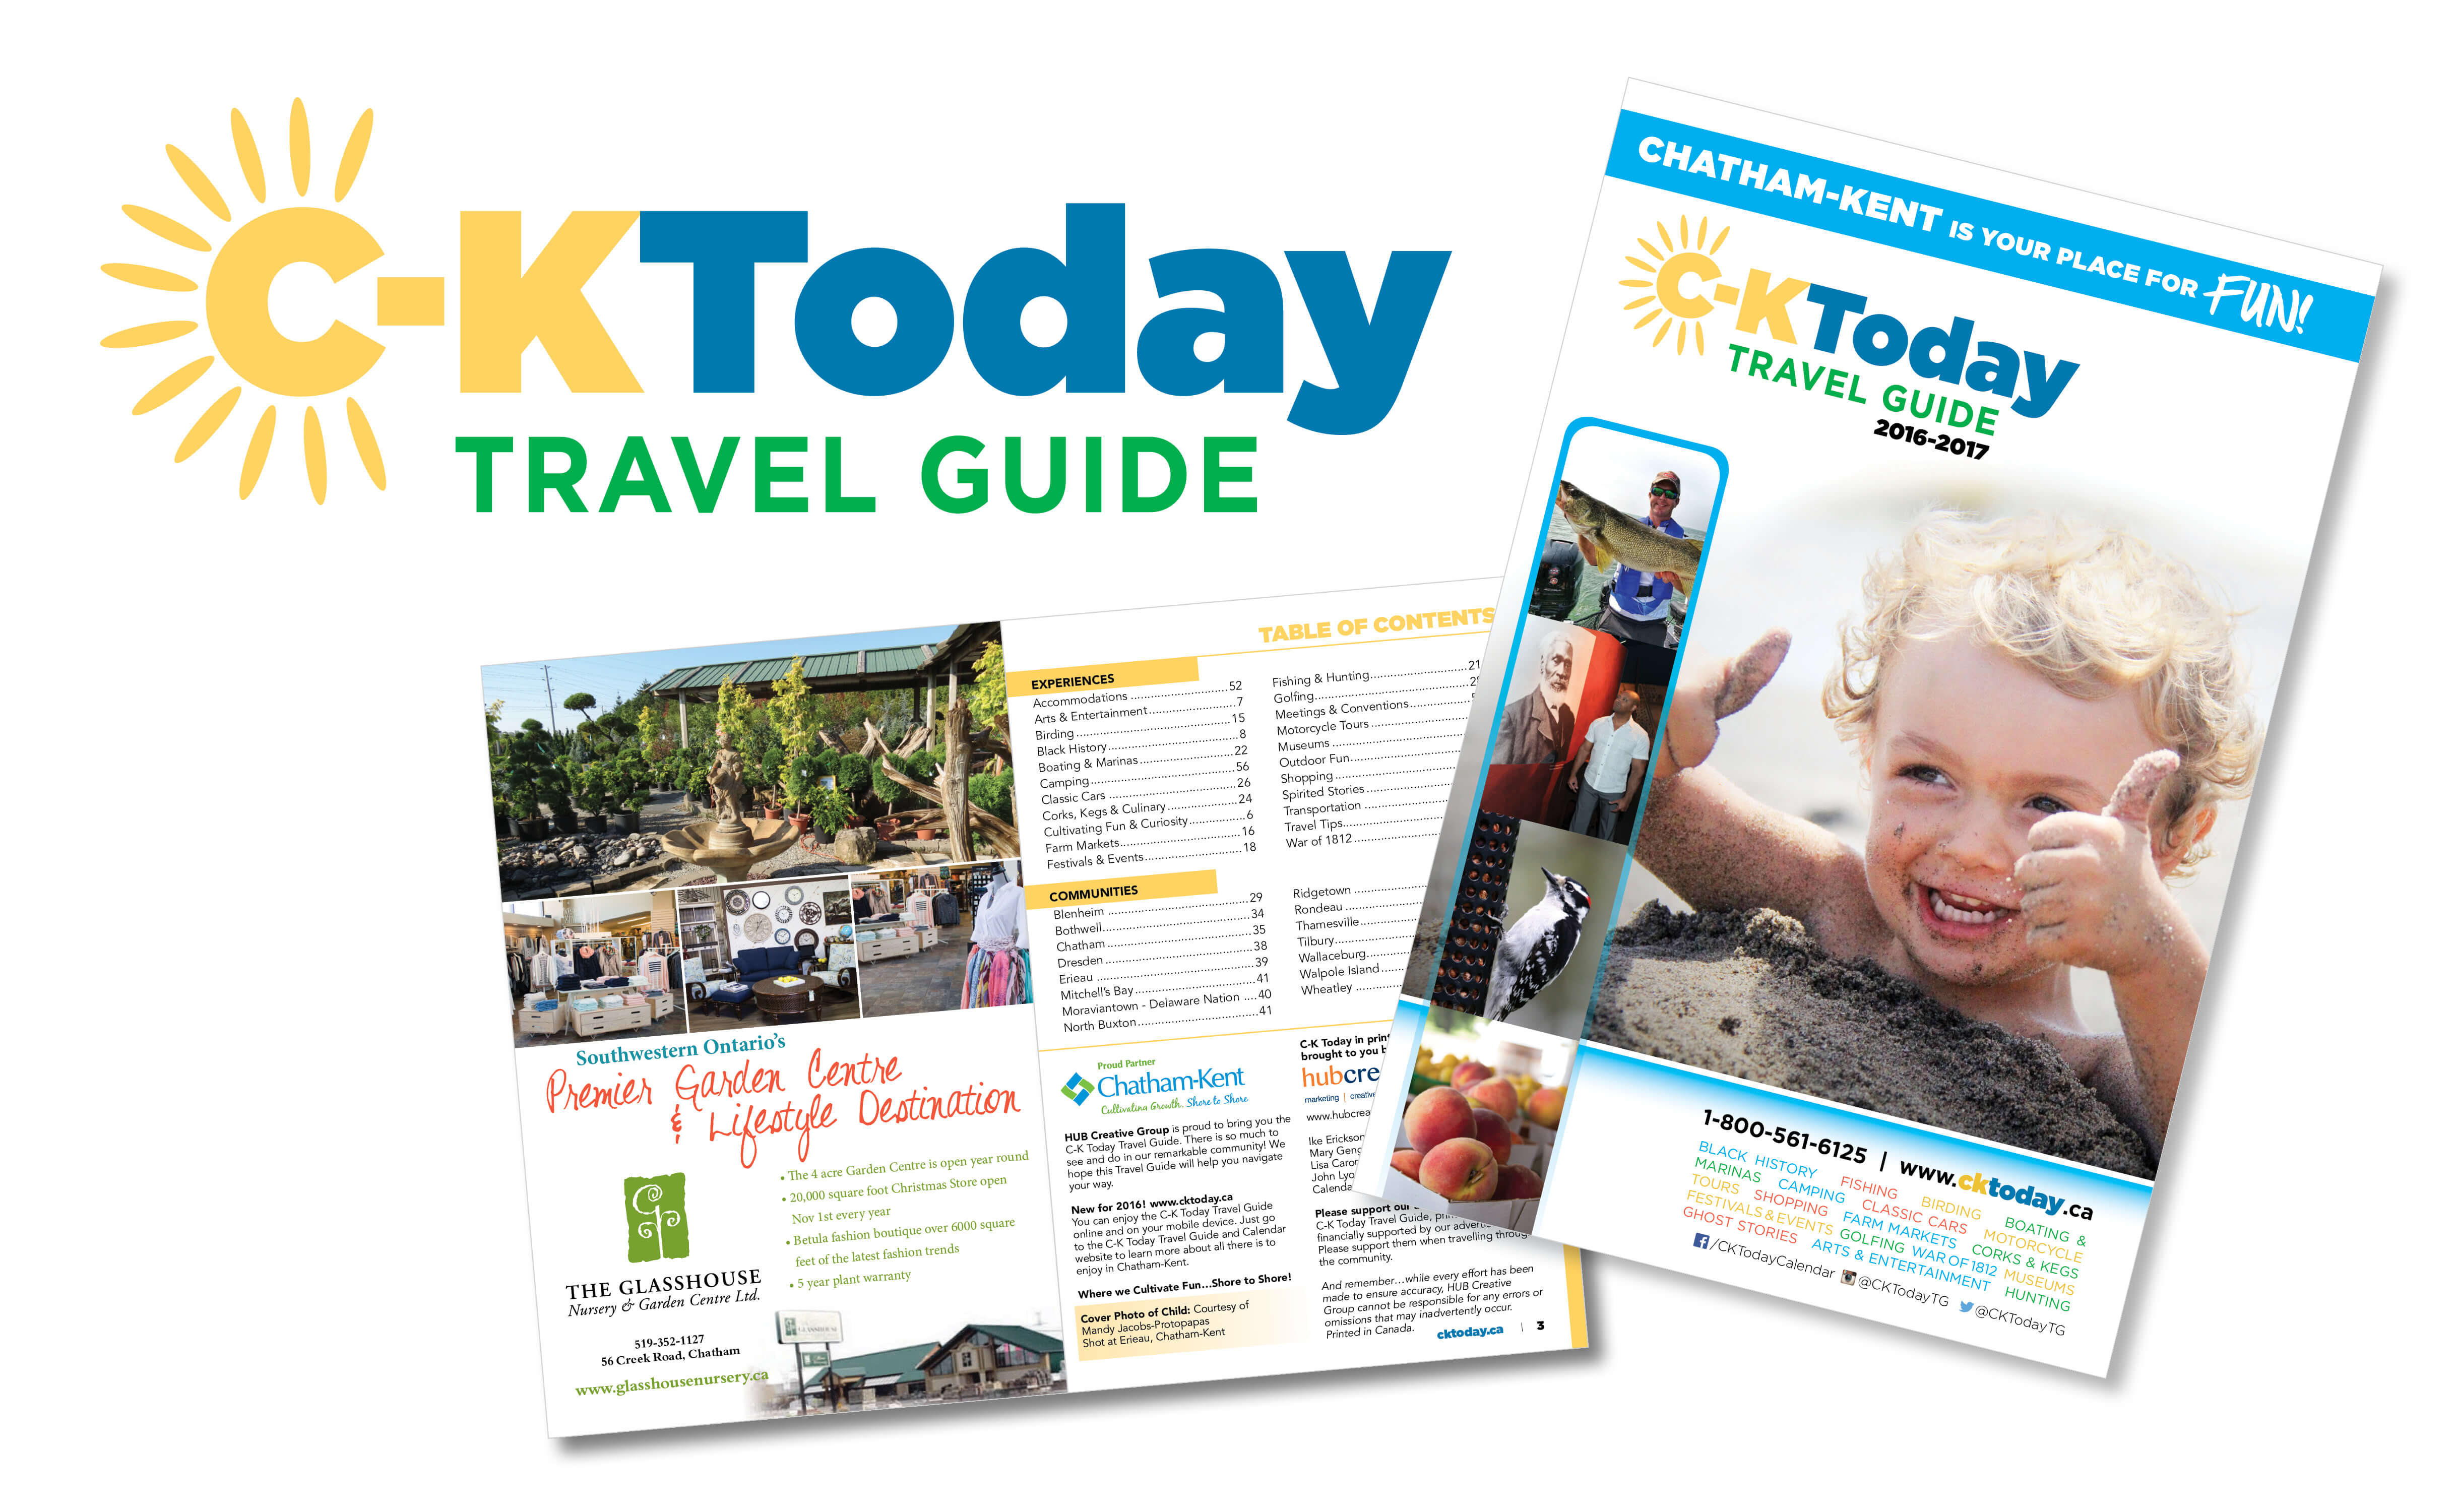 Ck Today Travel Guide